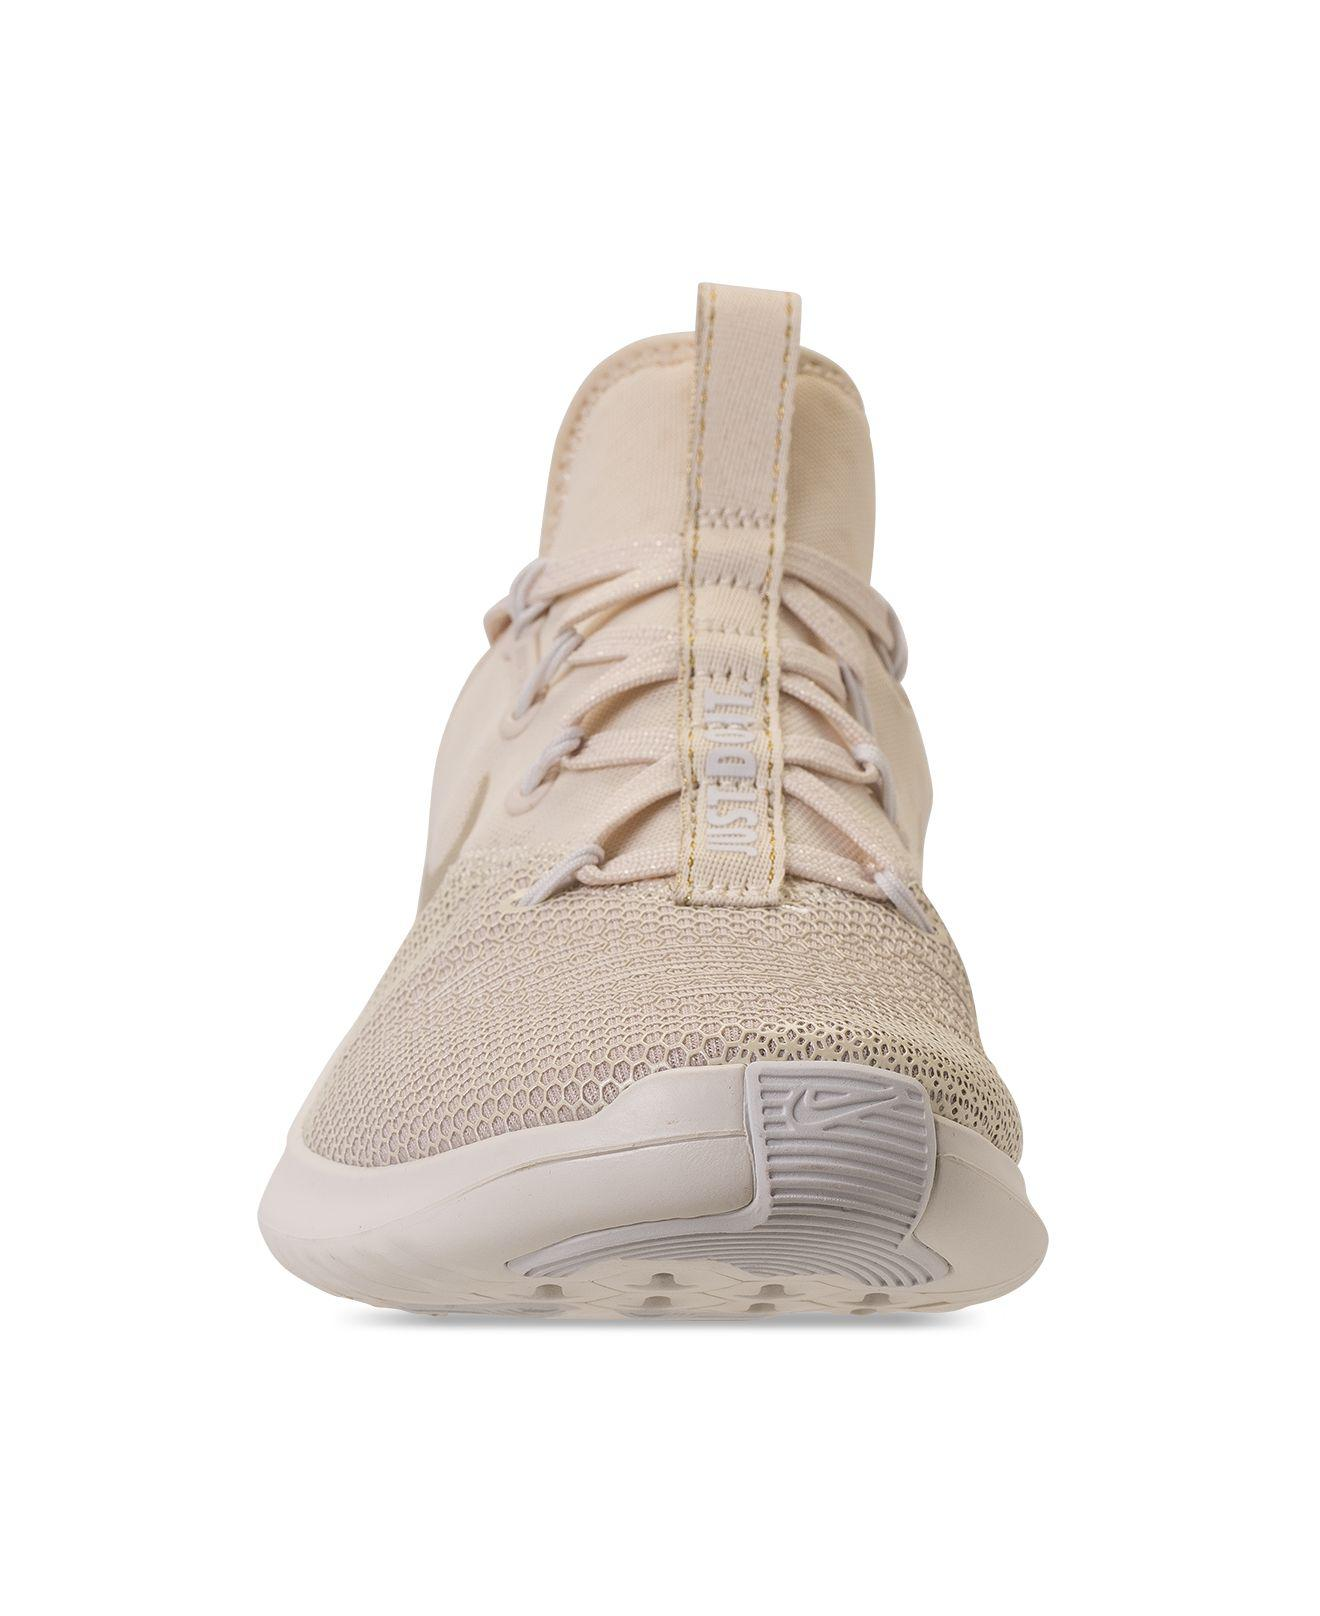 1638461be1848 Nike - Natural Free Tr 8 Chmp Training Sneakers From Finish Line - Lyst.  View fullscreen